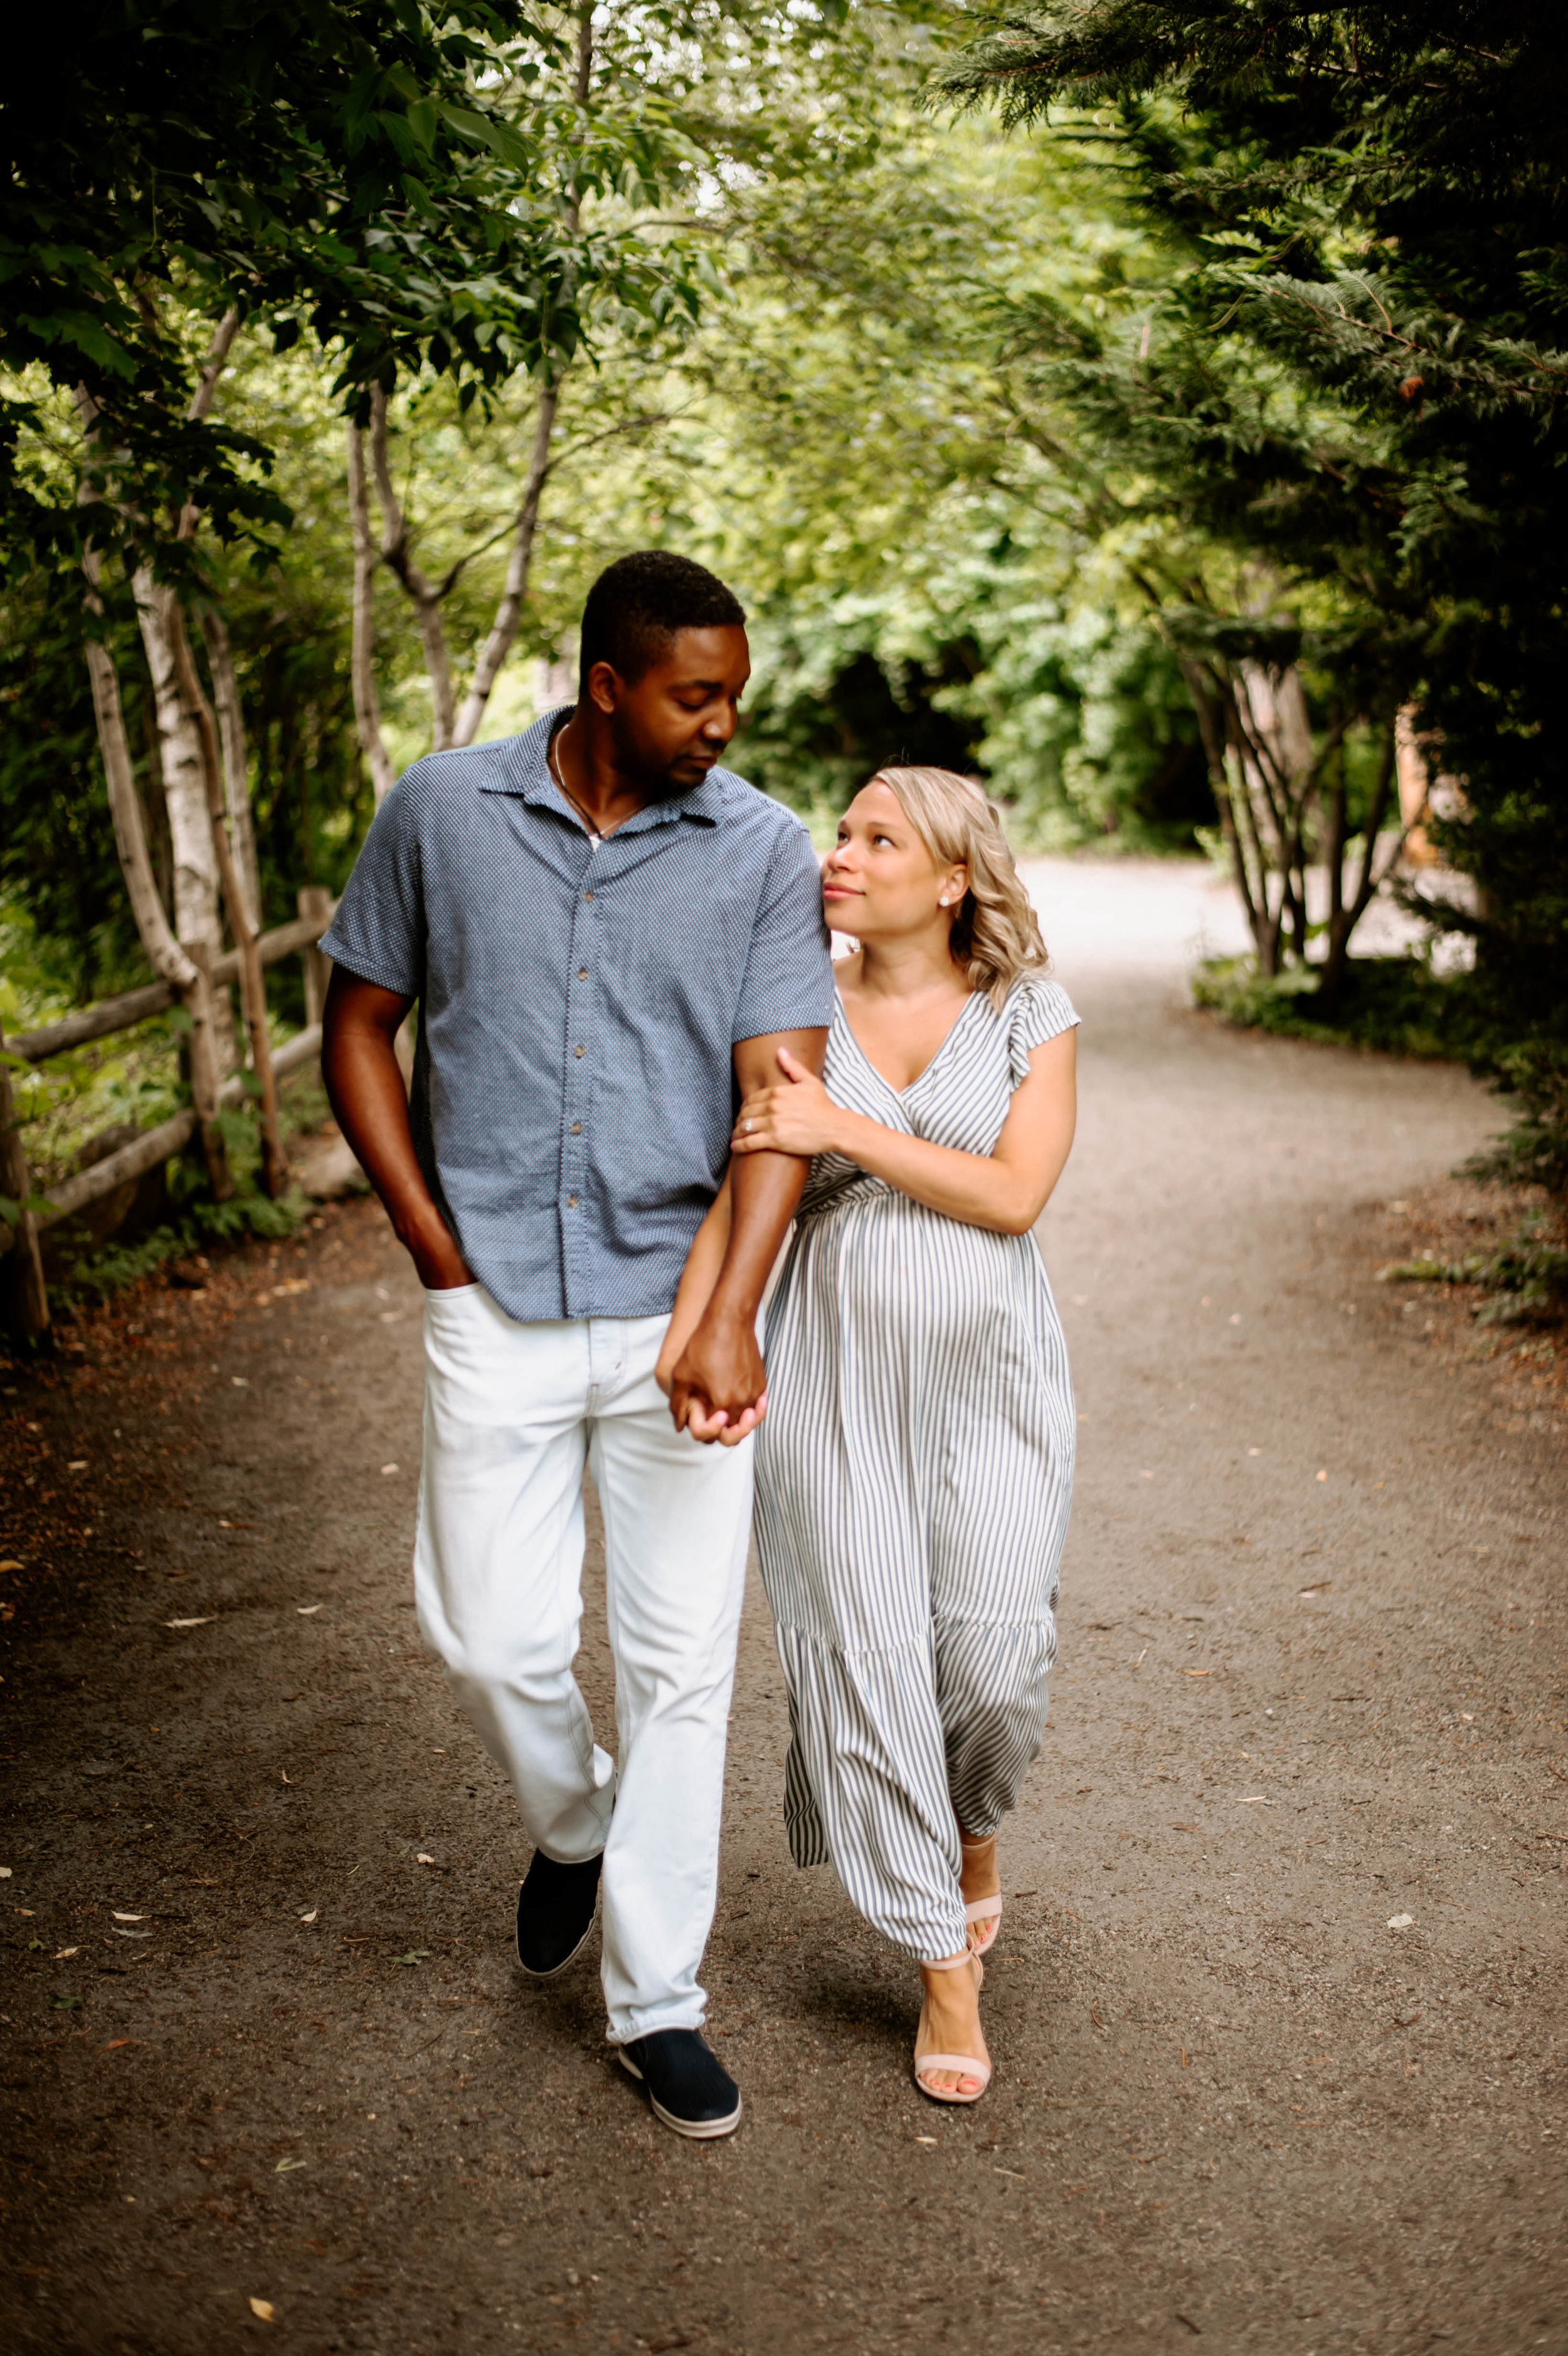 maternity session at the zoo-13.jpg